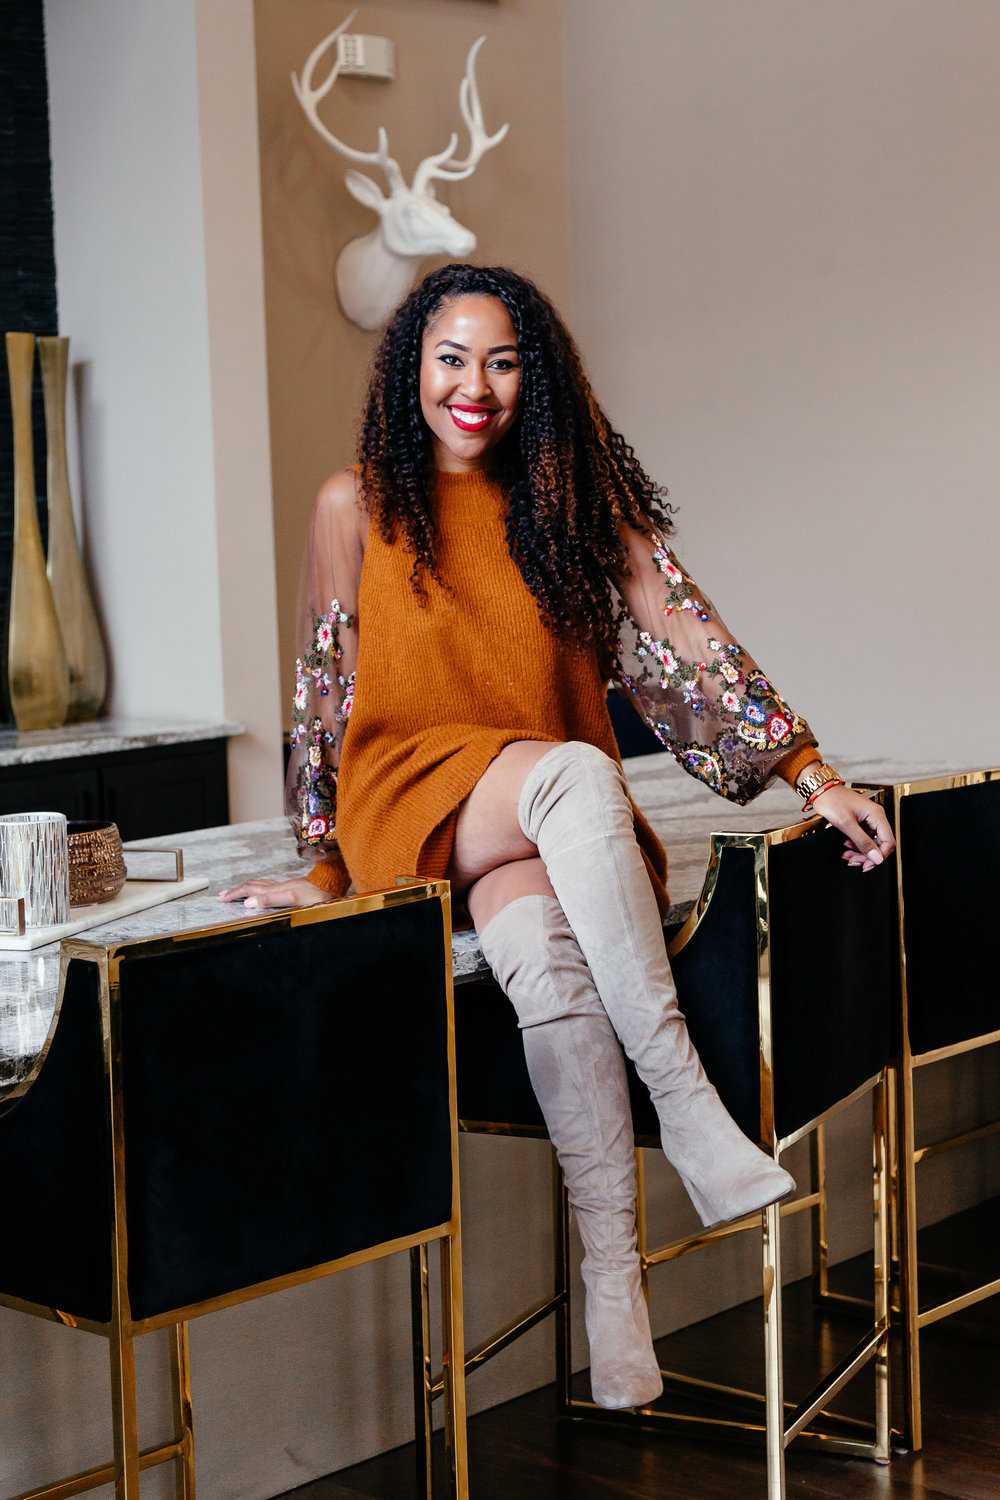 Ashley Empowers, CEO & Founder